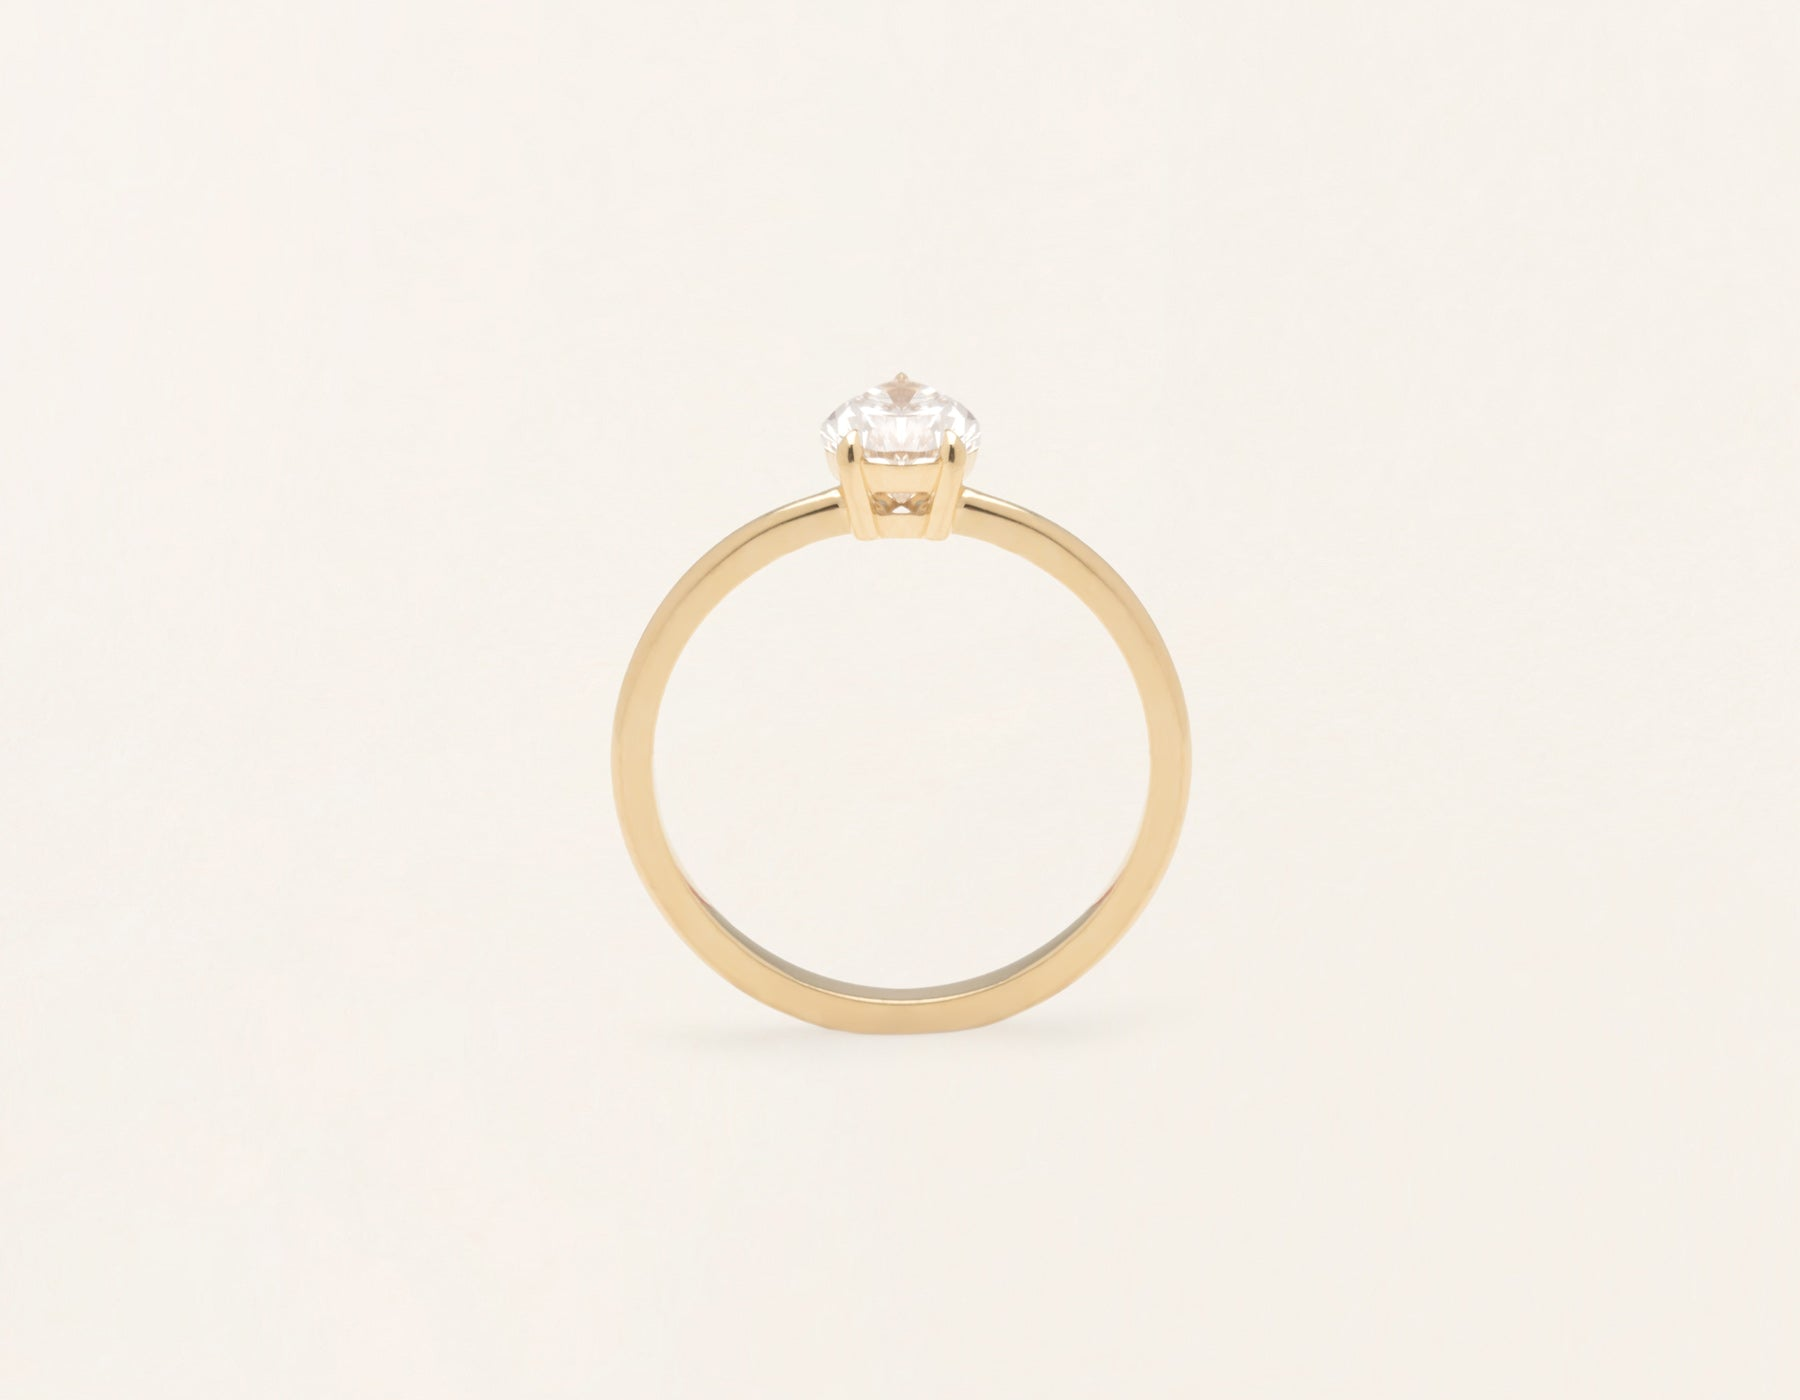 Vrai and Oro modern classic The pear diamond engagement ring 18k solid yellow gold sustainable jewelry